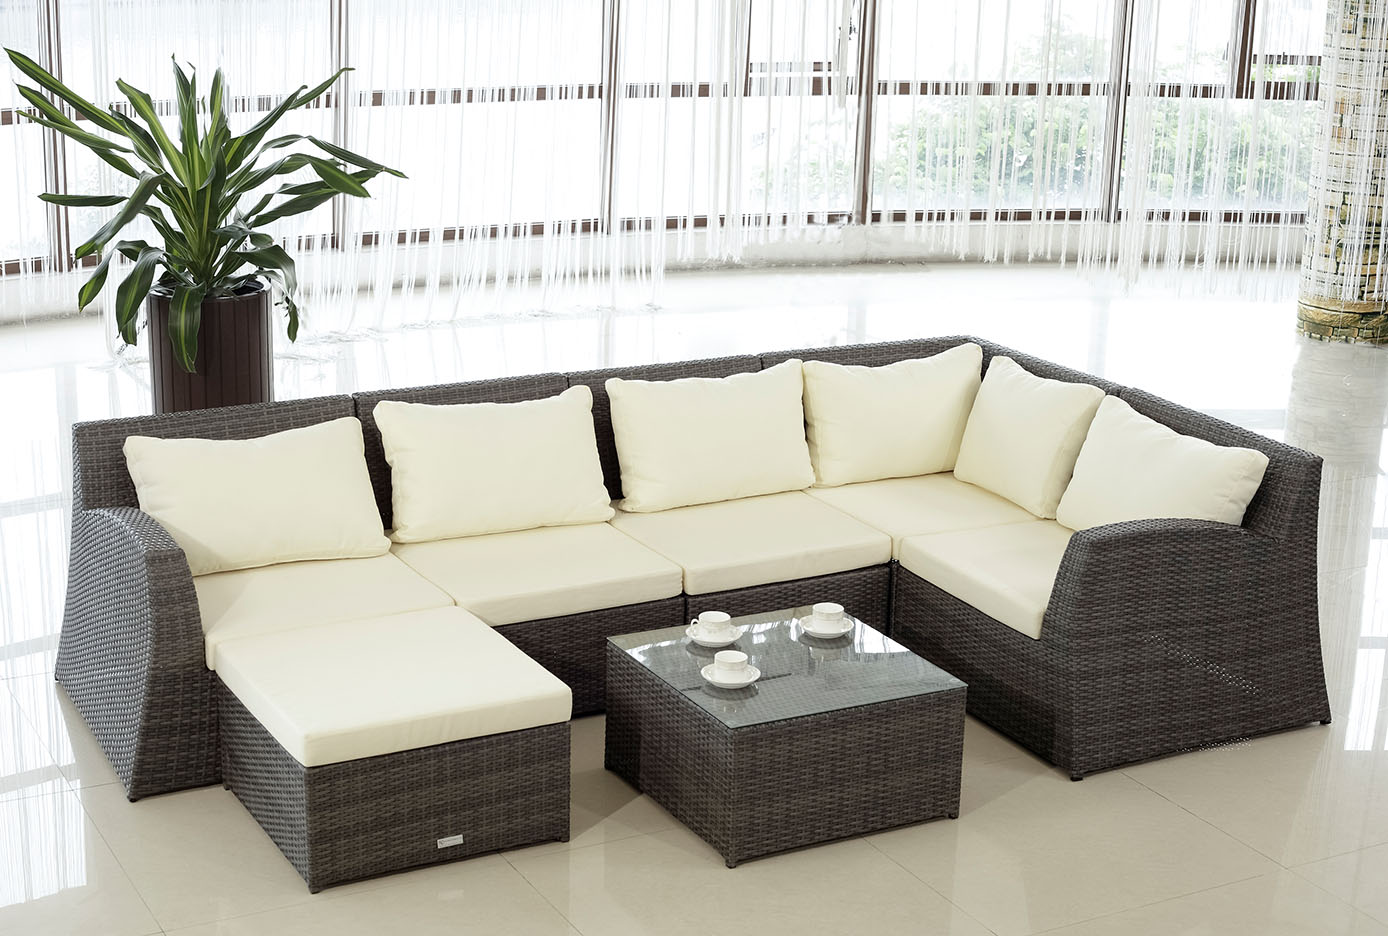 Image of: Replacement Cushions For Rattan Furniture